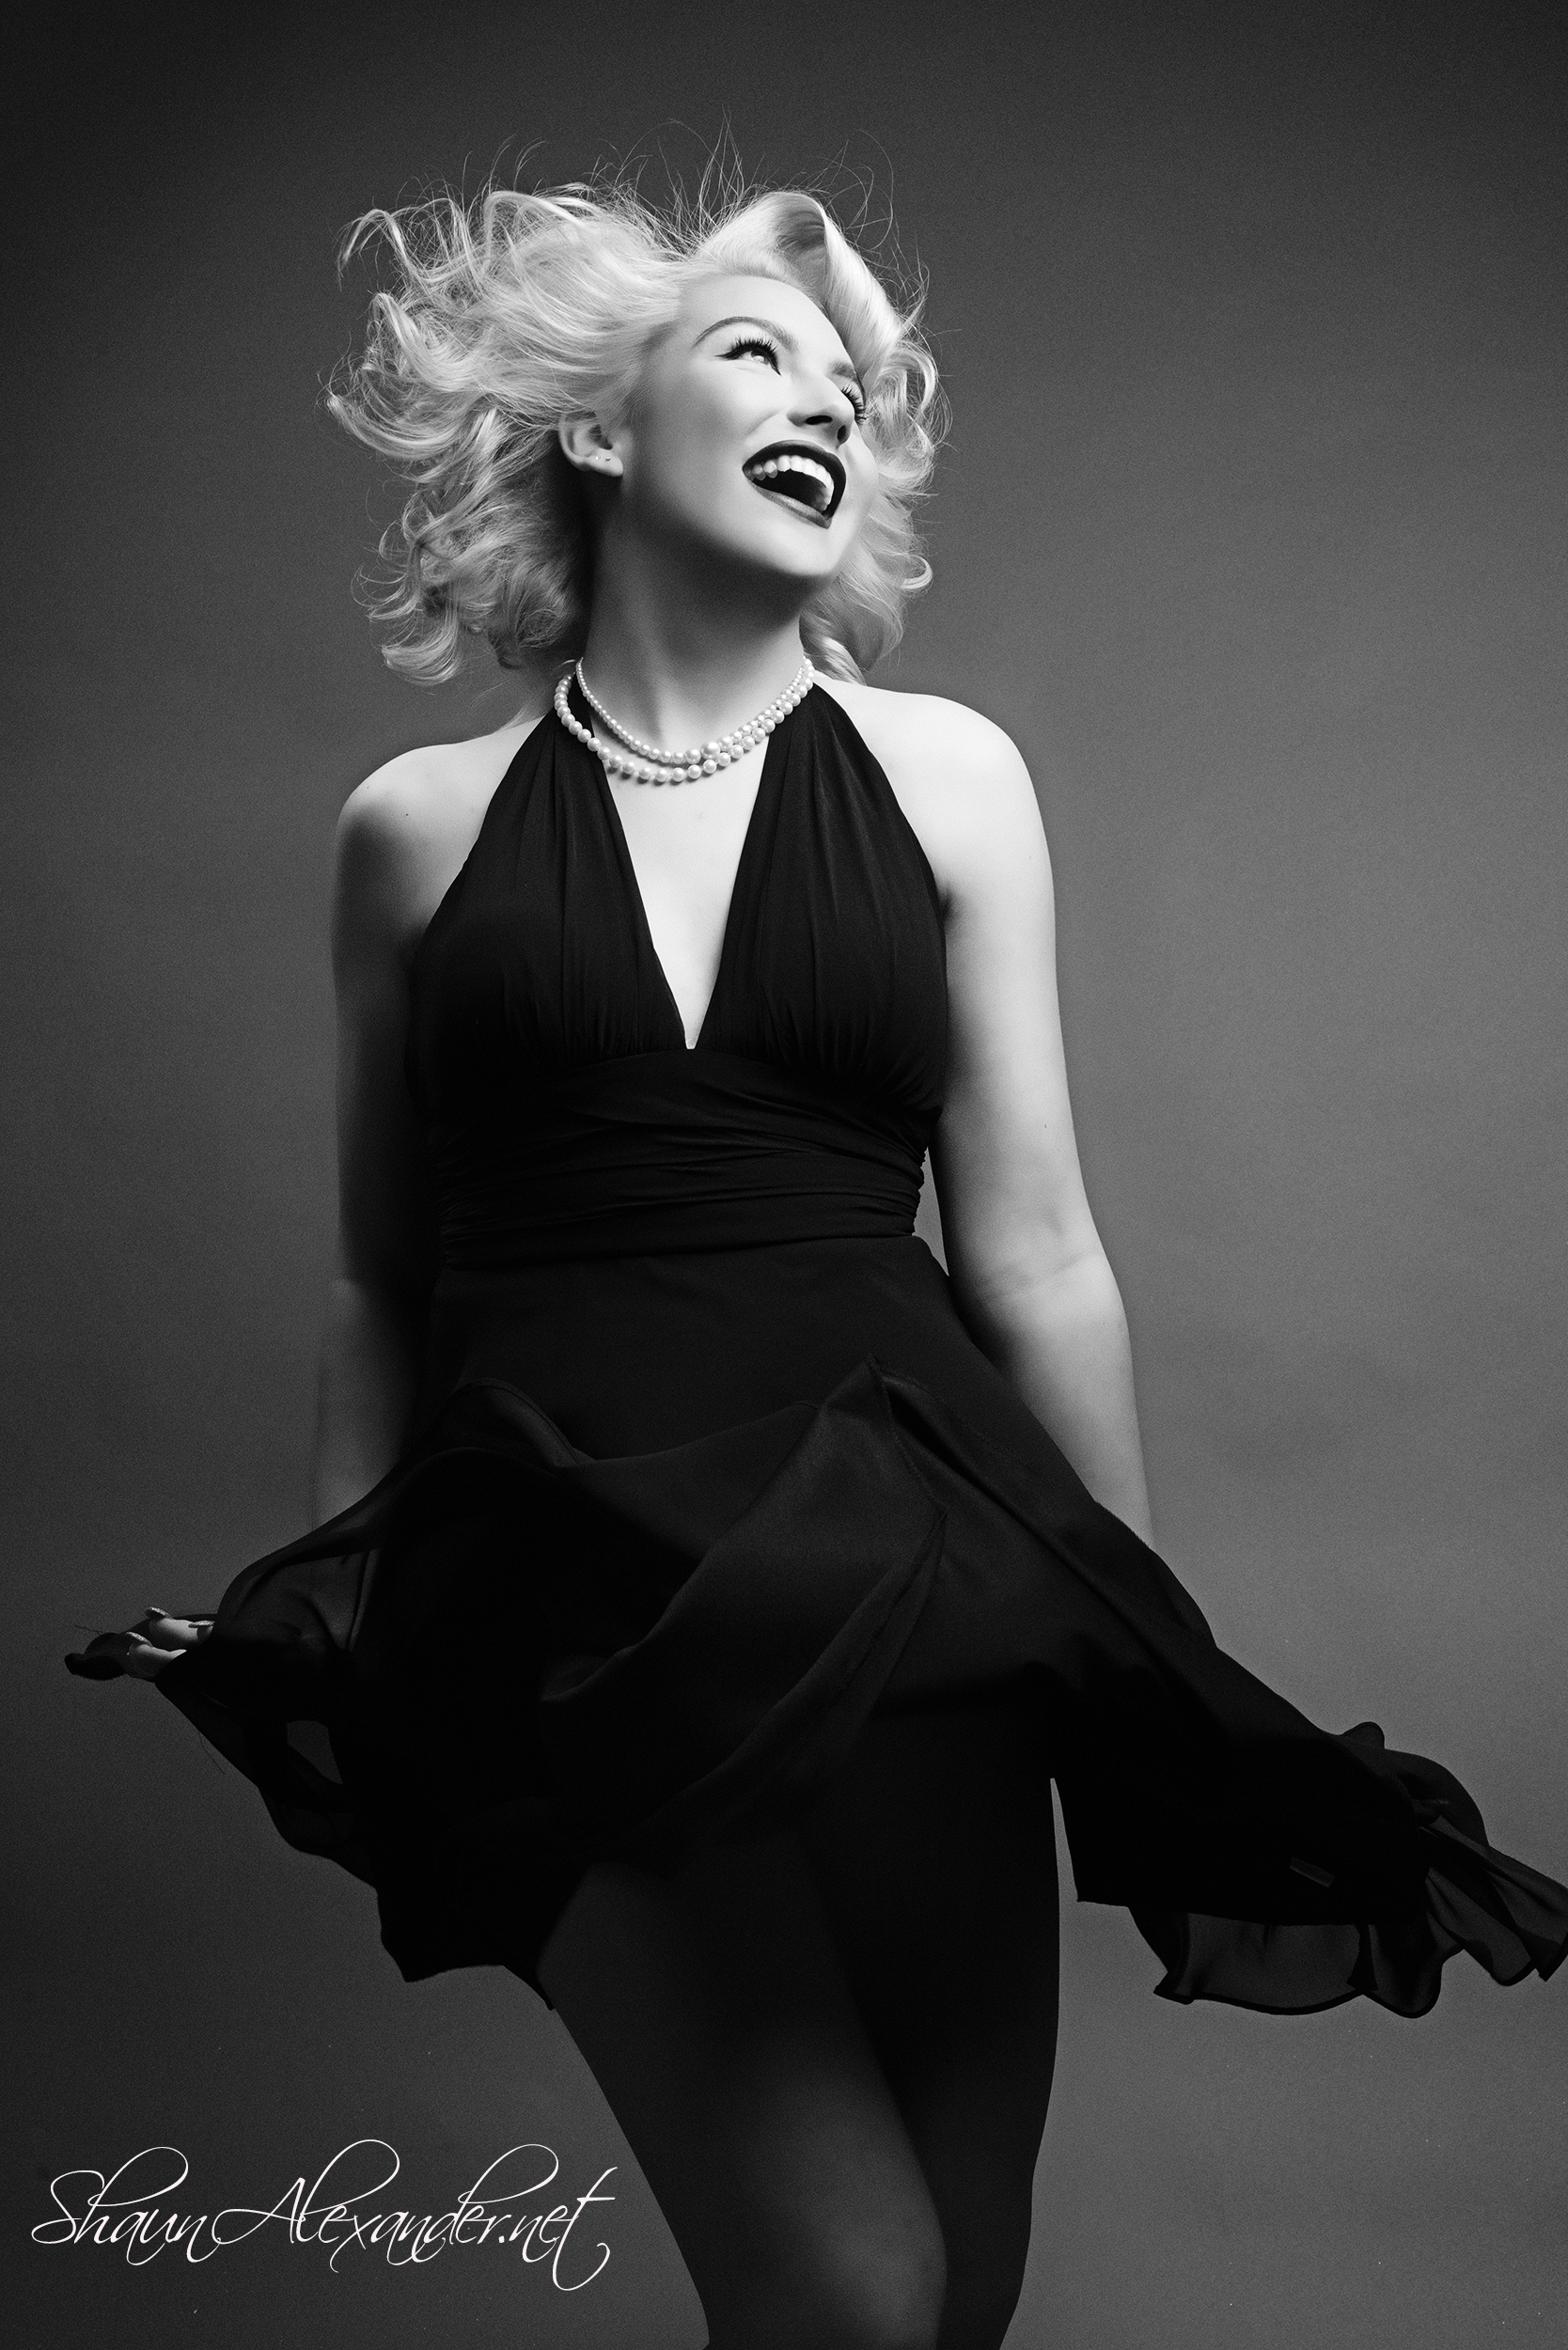 old hollywood lighting. Old Hollywood Marilyn Monroe Style Photo Shoot By Fashion Photographer Shaun Alexander Lighting